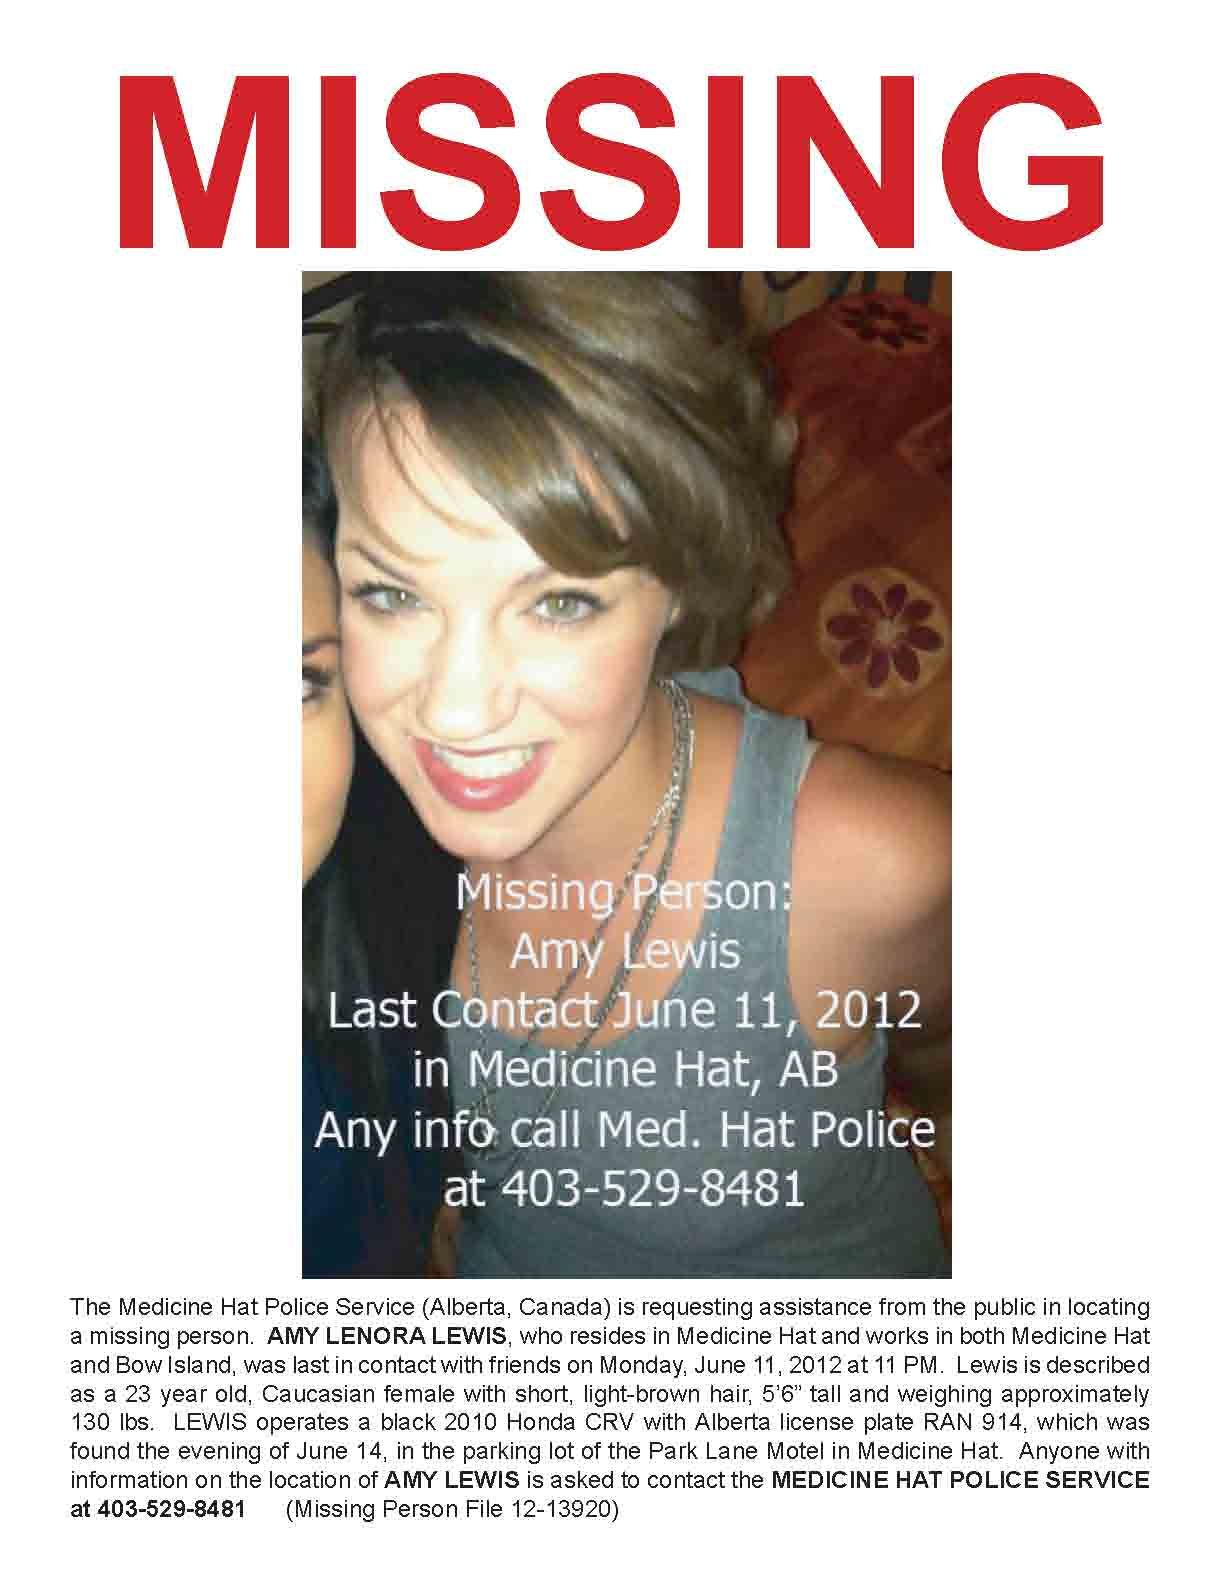 MISSING PERSON! AMY LEWIS, 23 year old, Caucasian female